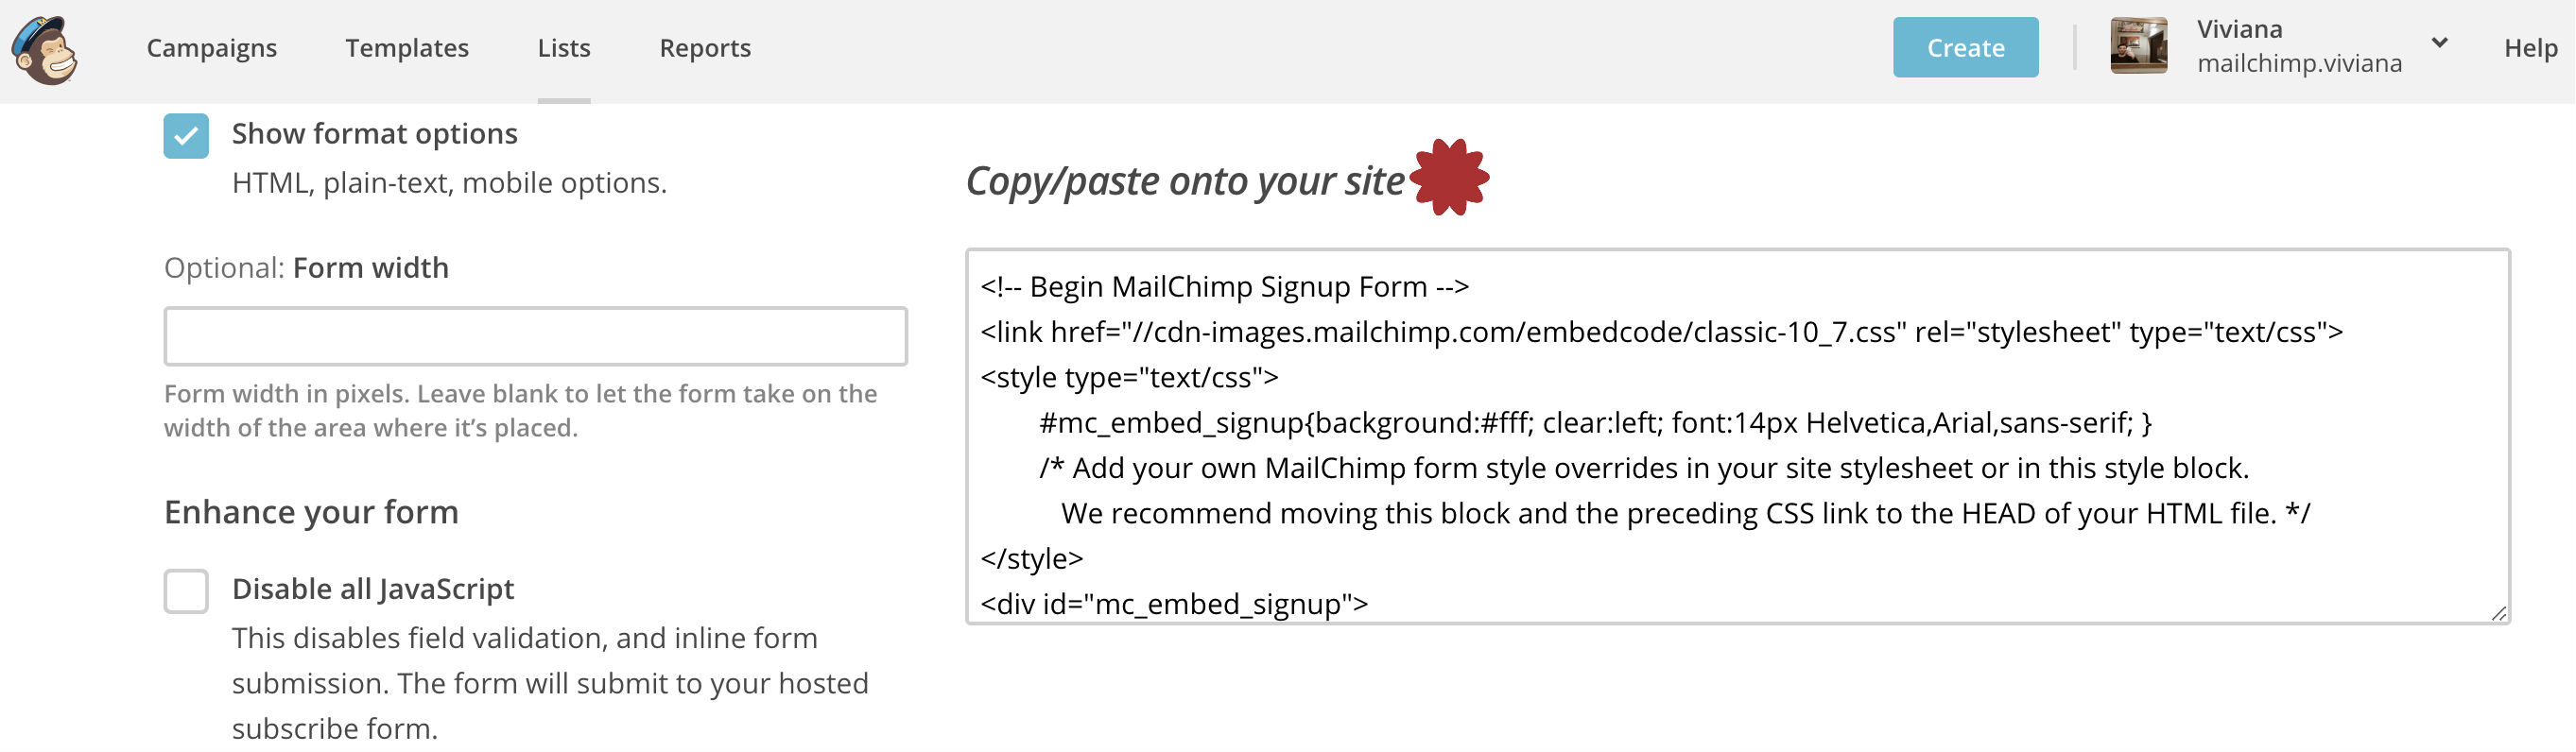 Mailchimp WordPress, Mailchimp for WordPress, Mailchimp newsletter, Mailchimp WordPress integration, Mailchimp WordPress tutorial, Mailchimp WordPress HTML, Mailchimp WordPress HTML Embedded Form